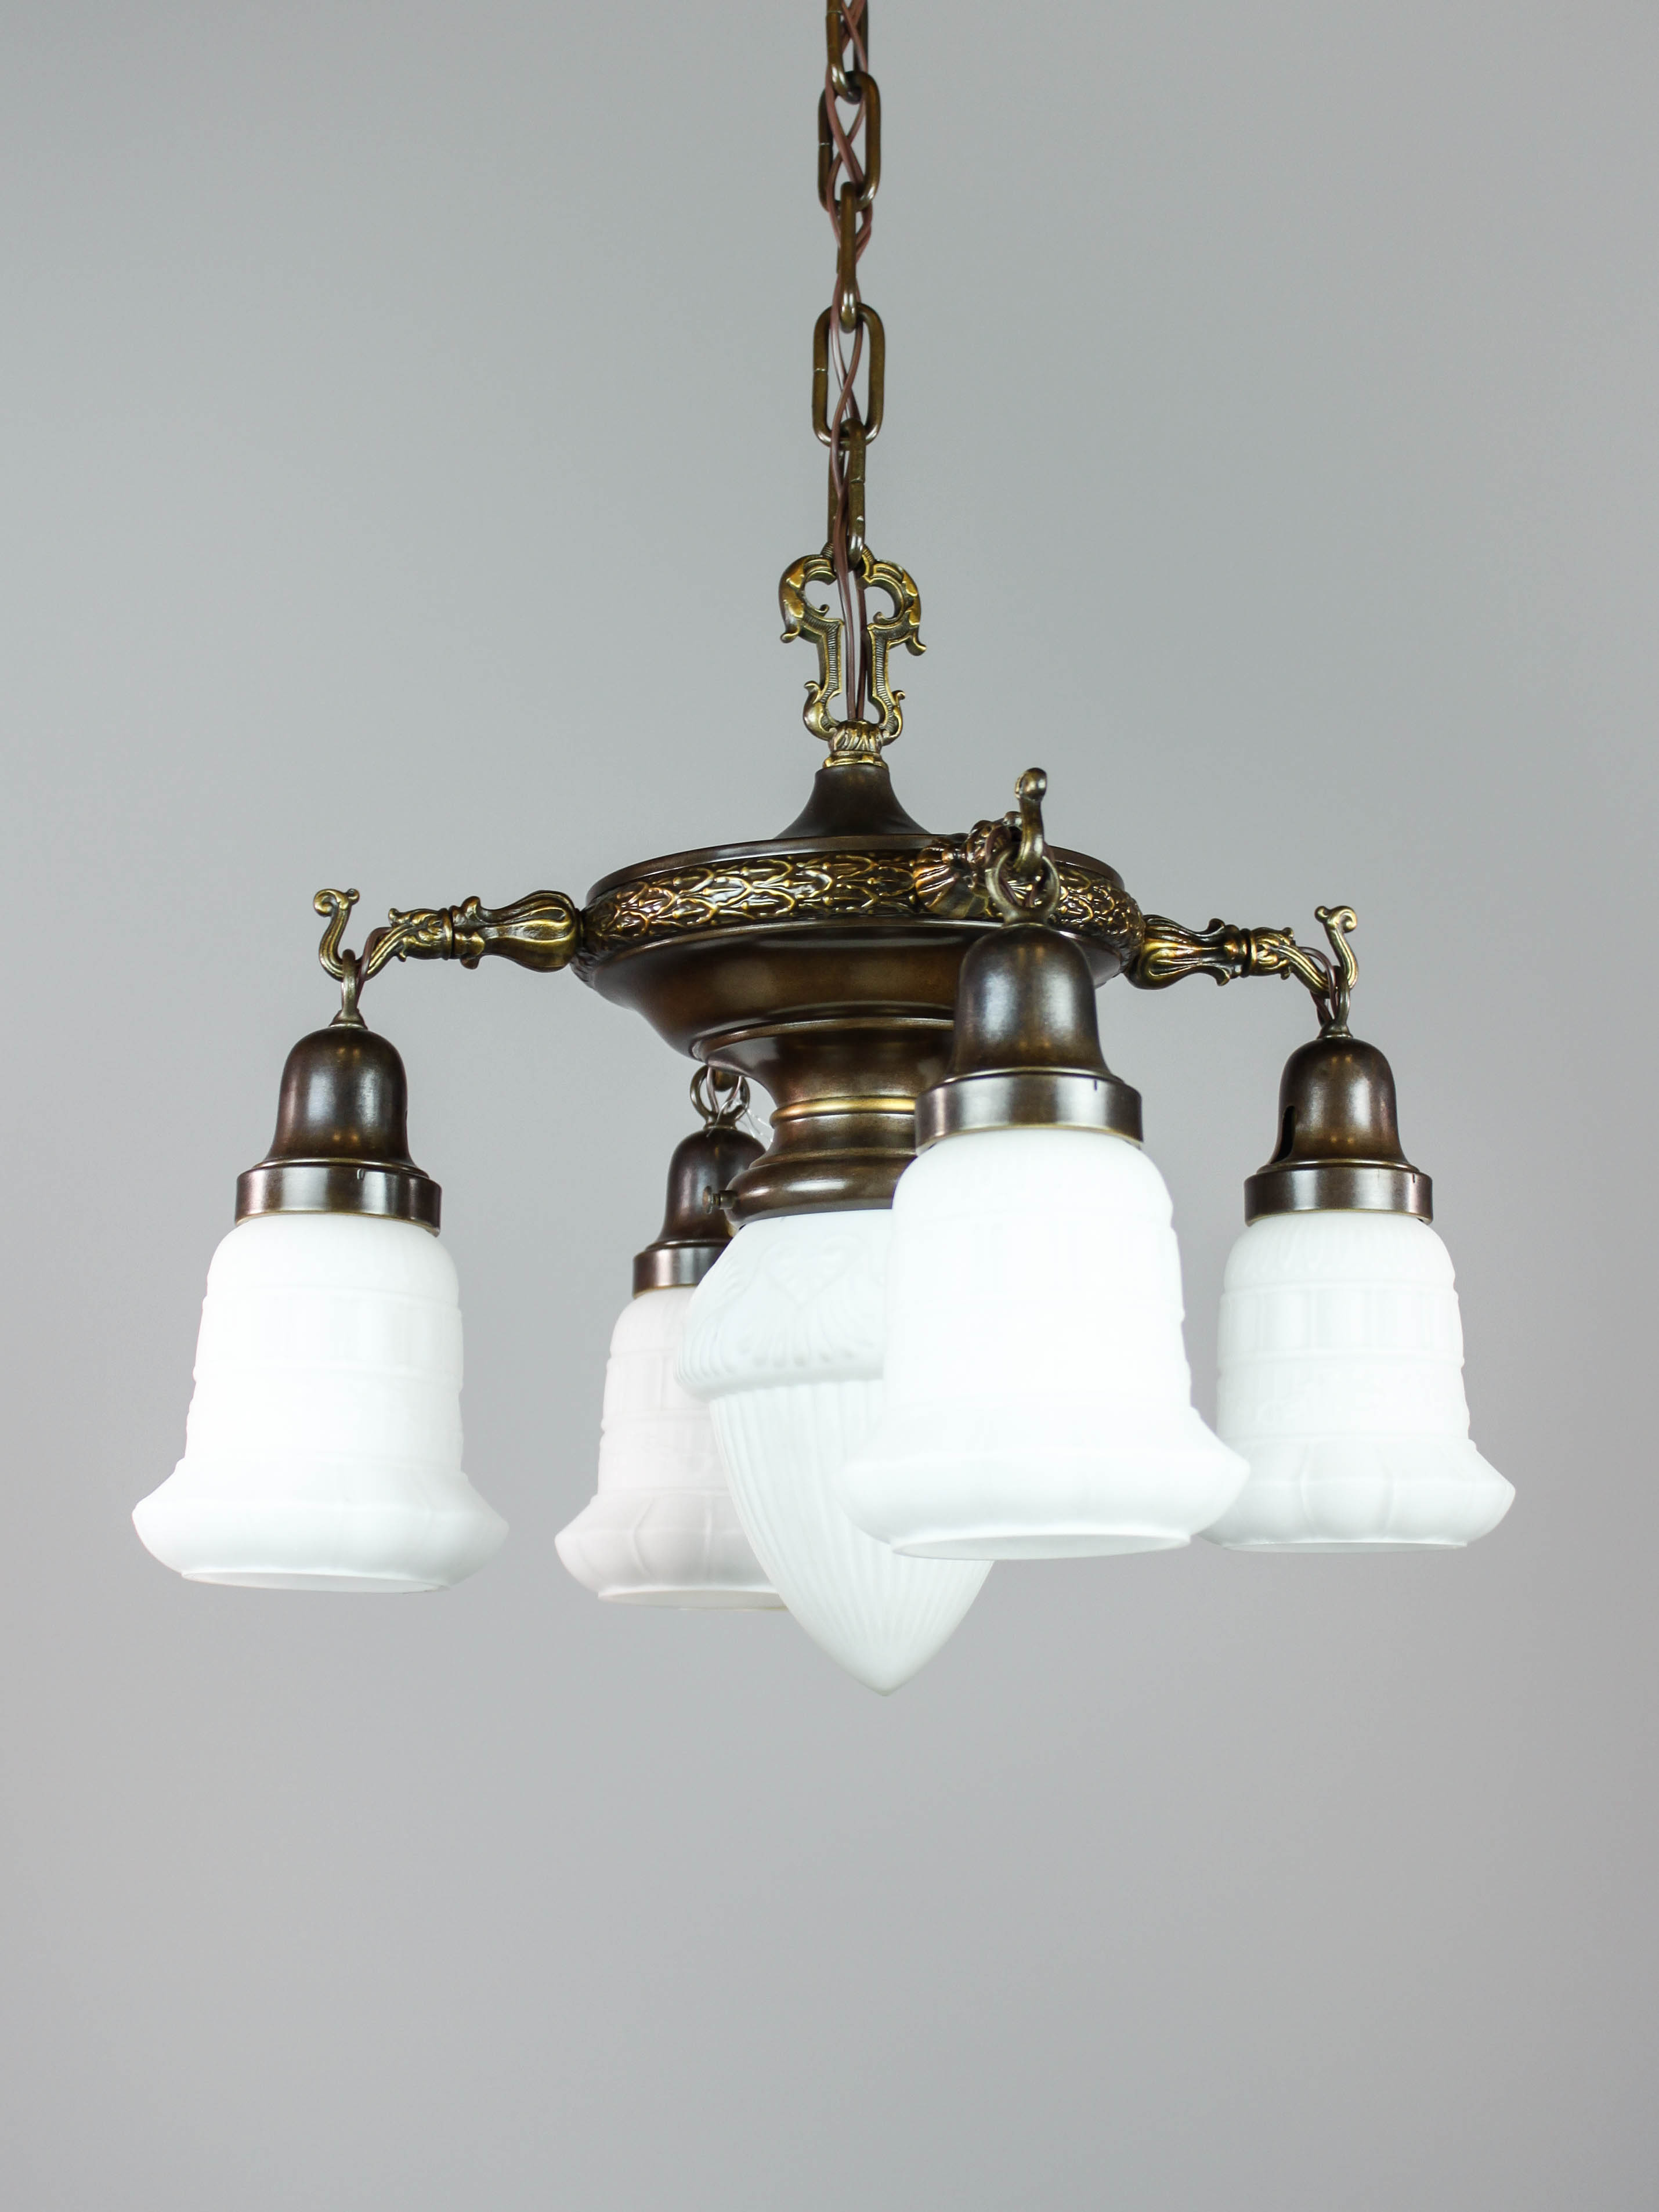 pan fixture ceiling fixtures colonial tulum smsender revival chandelier light co